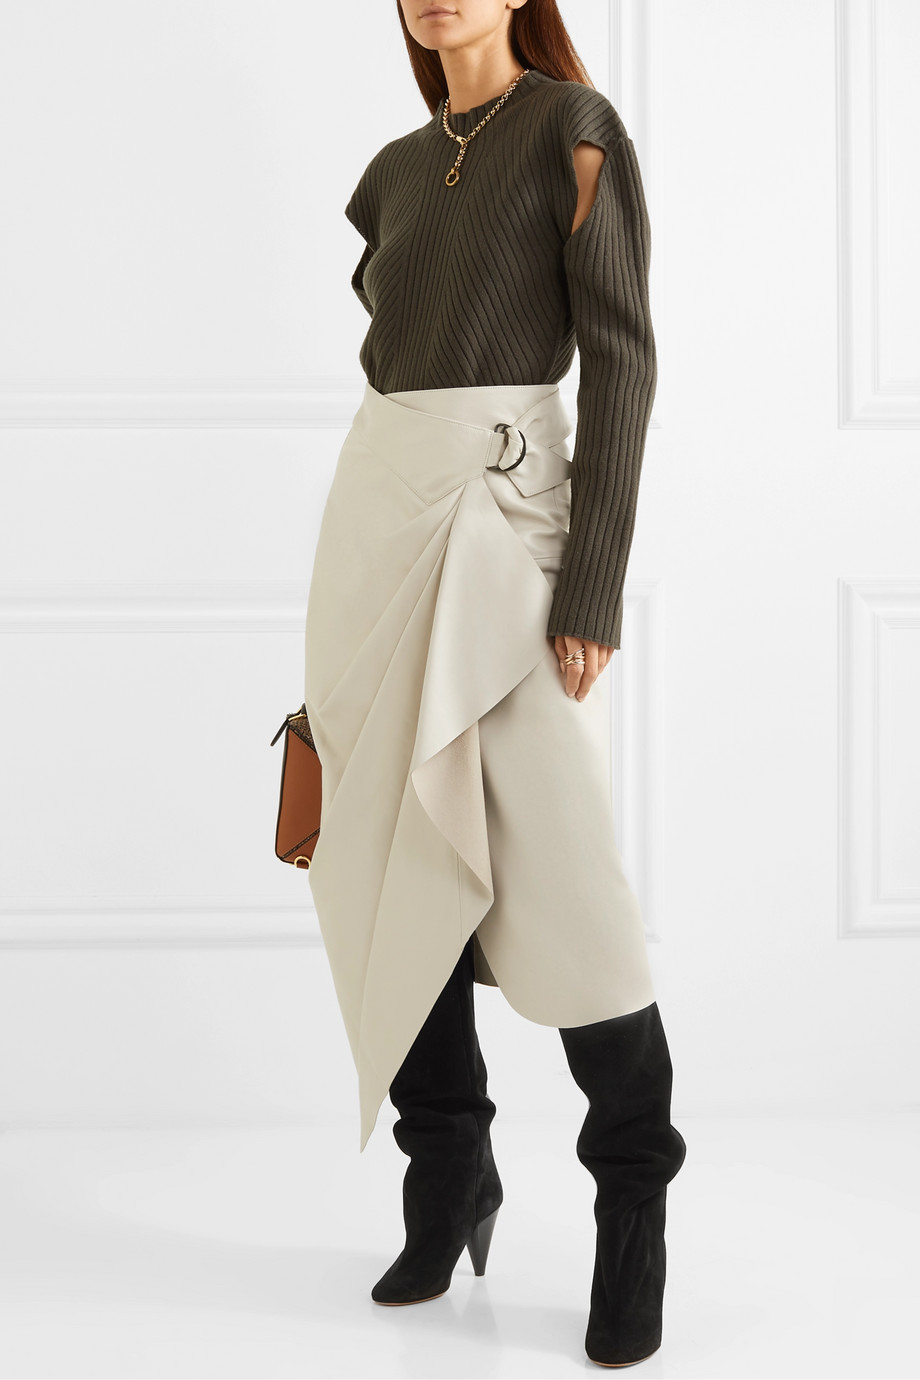 Spring Boots Trend 2019 - Boots with skirts Isabel Marant